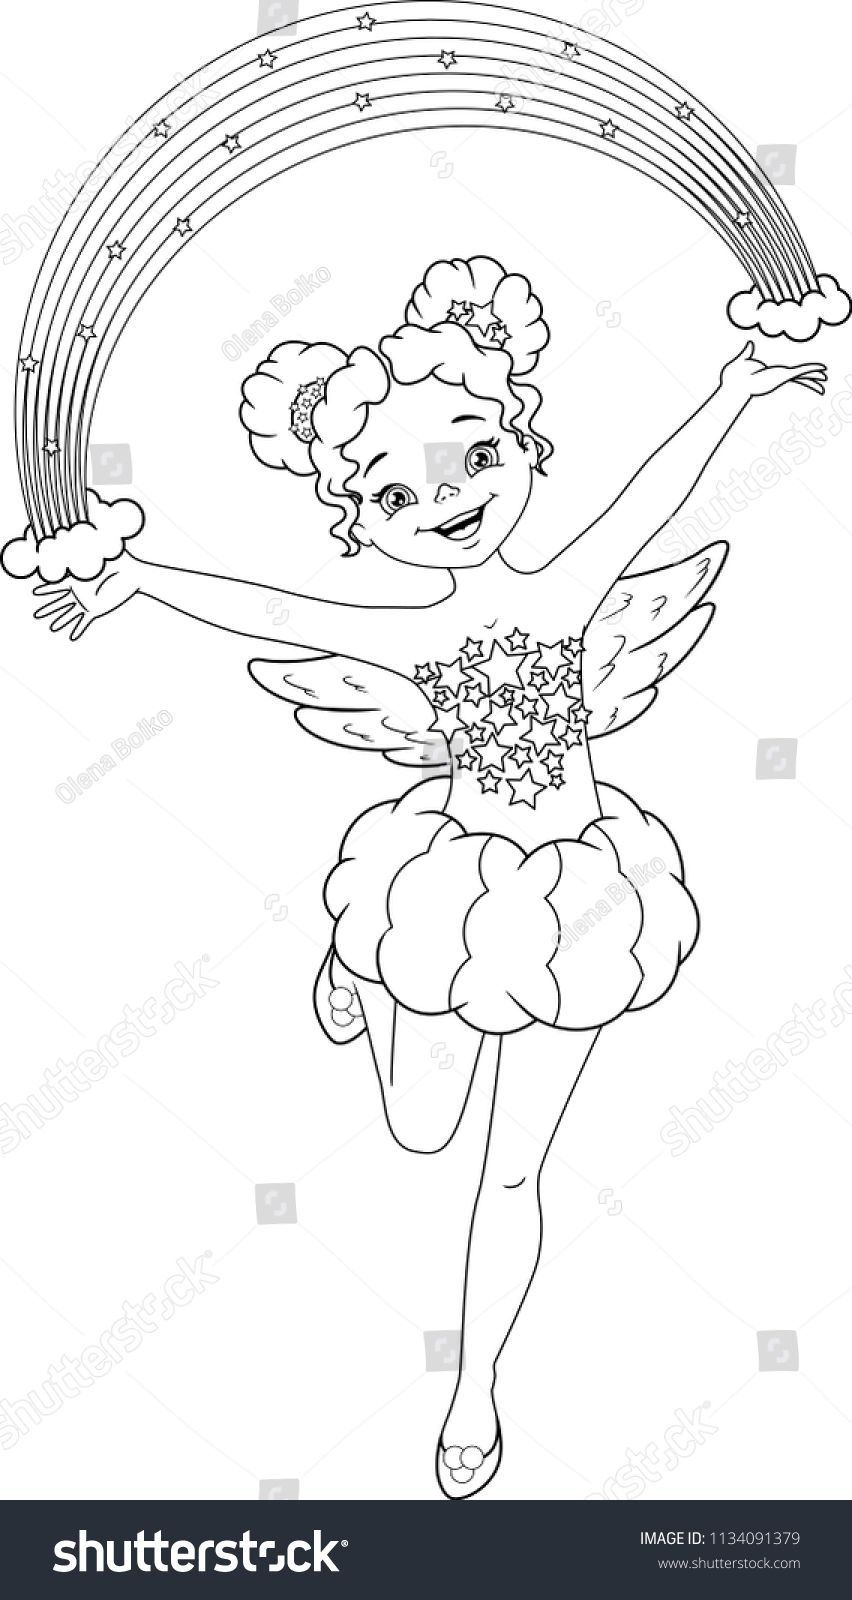 Rainbow Fairy Coloring Page Fairy Coloring Pages Fairy Coloring Butterfly Coloring Page